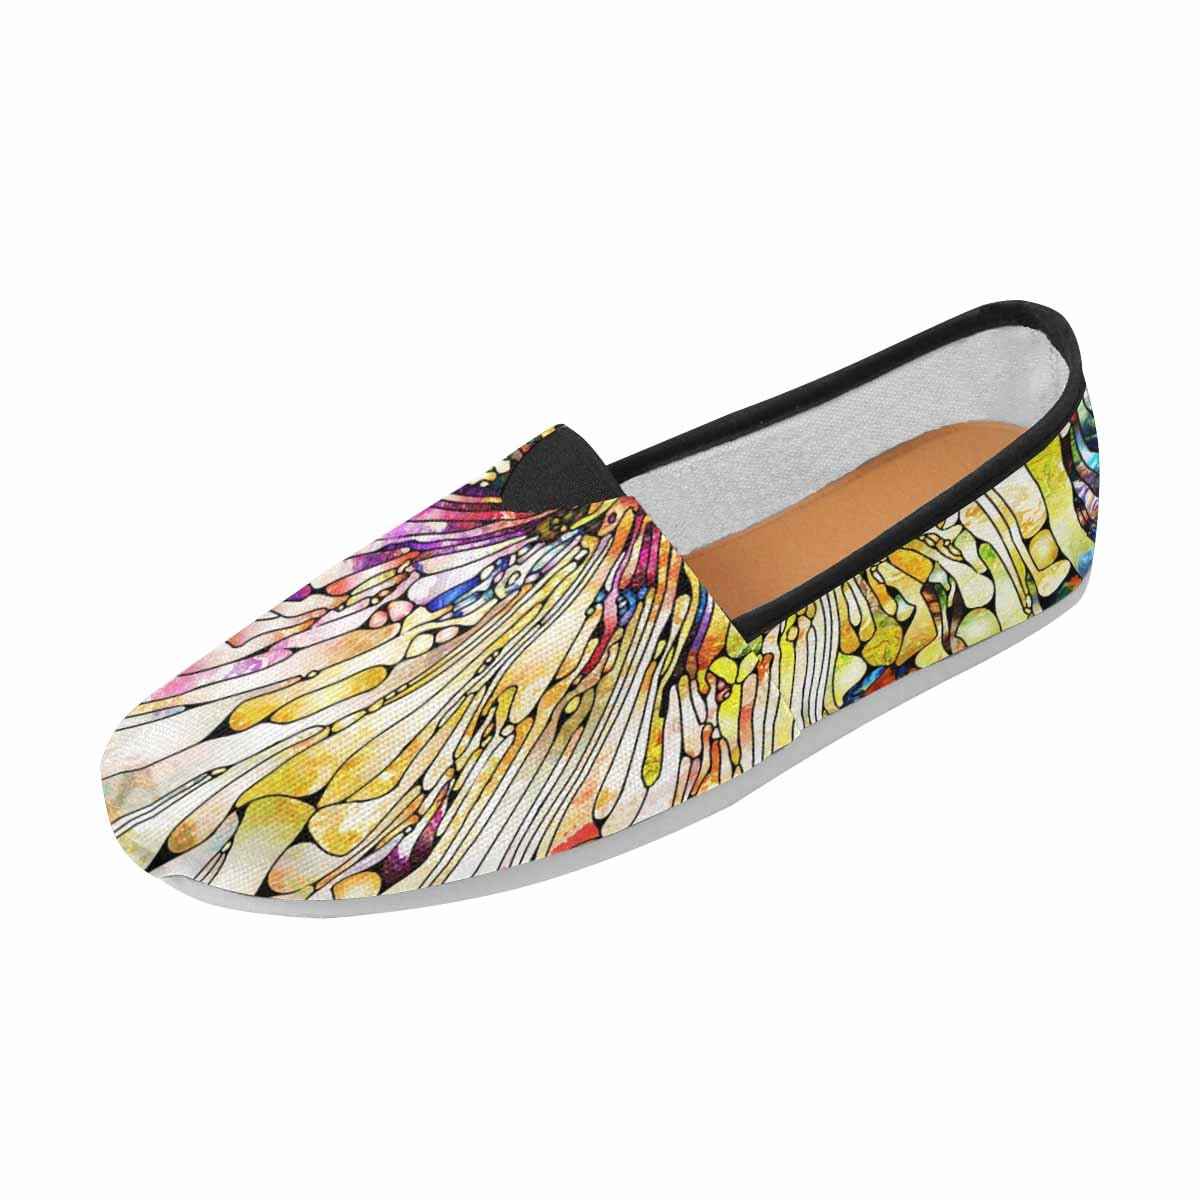 InterestPrint Women's Loafers Casual Slip On Flats 6 B(M) US Stained Glass Series